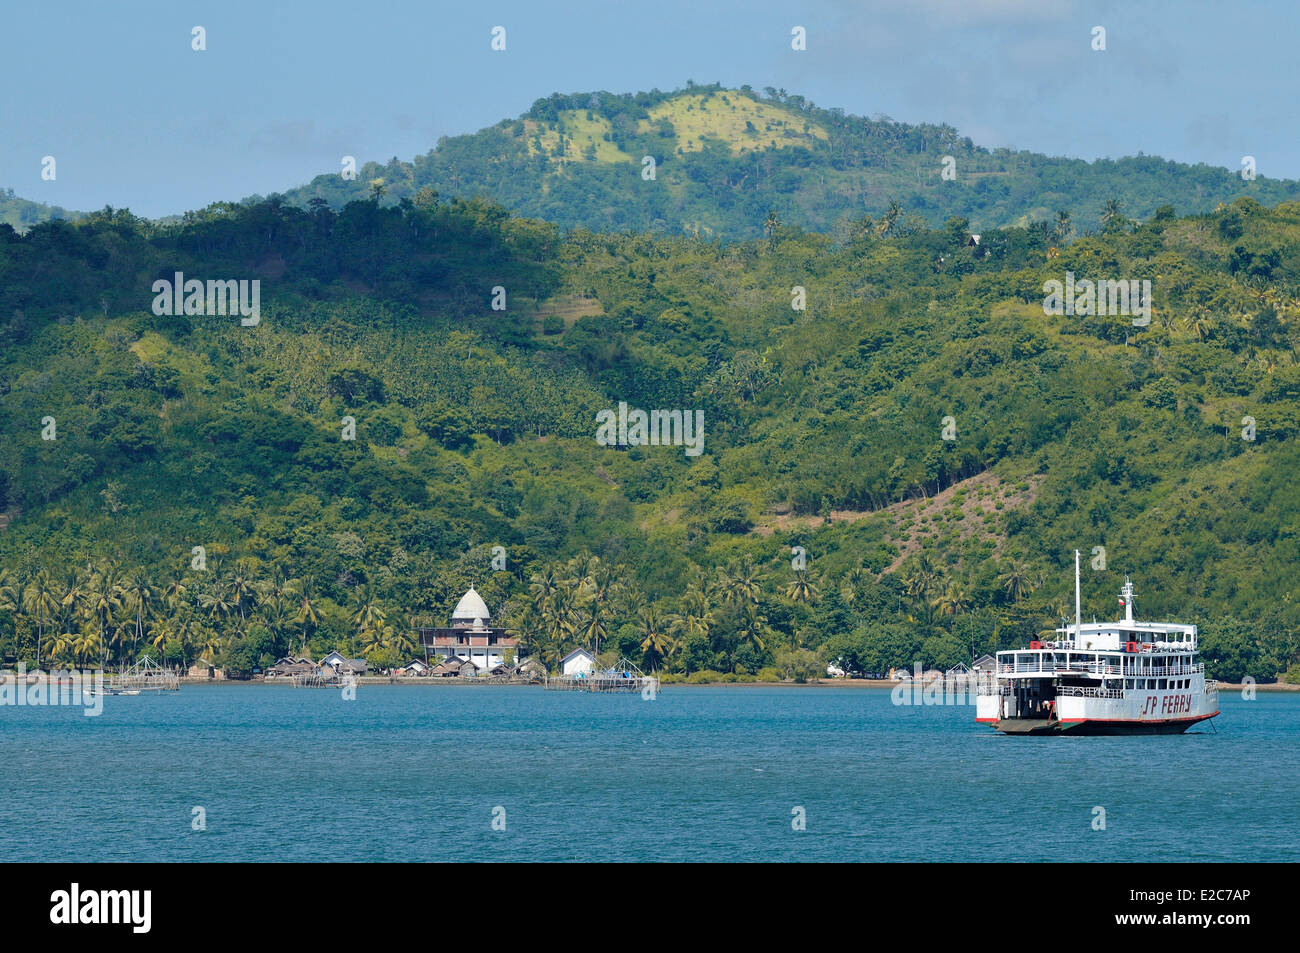 Indonesia, Lombok, the ferry arrives in Lembar bay - Stock Image